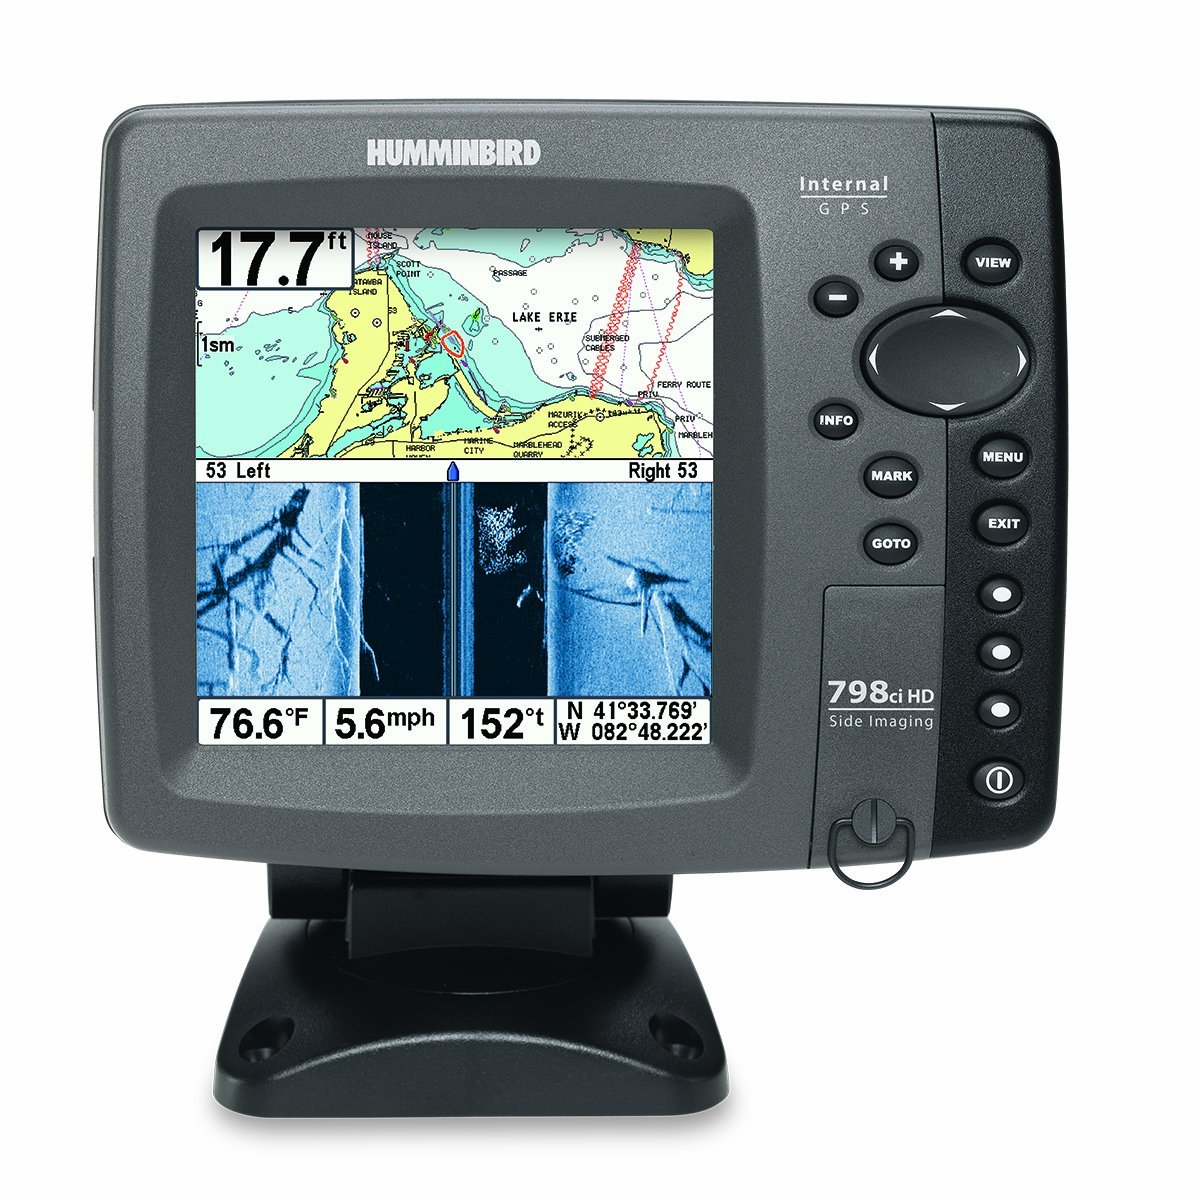 humminbird 798ci hd si combo review fish finder guy